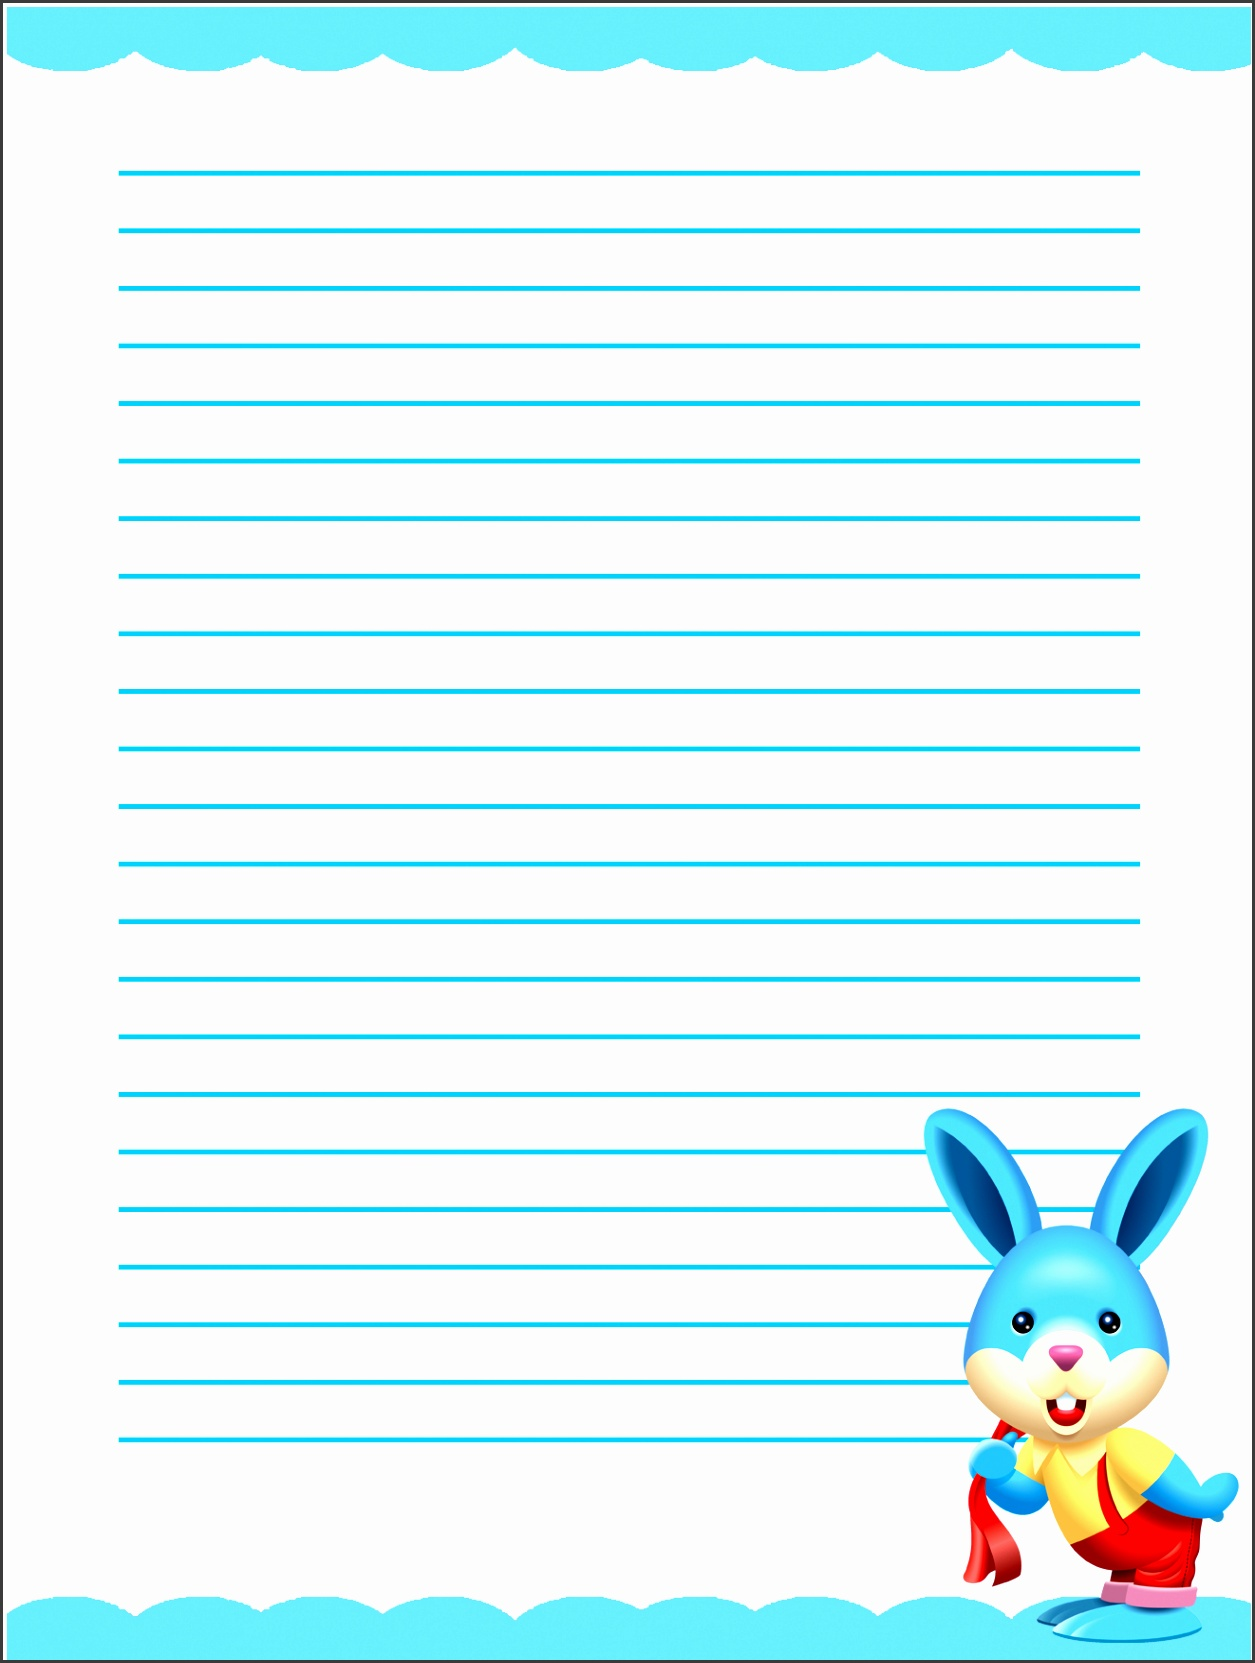 Templates clipart note paper 12